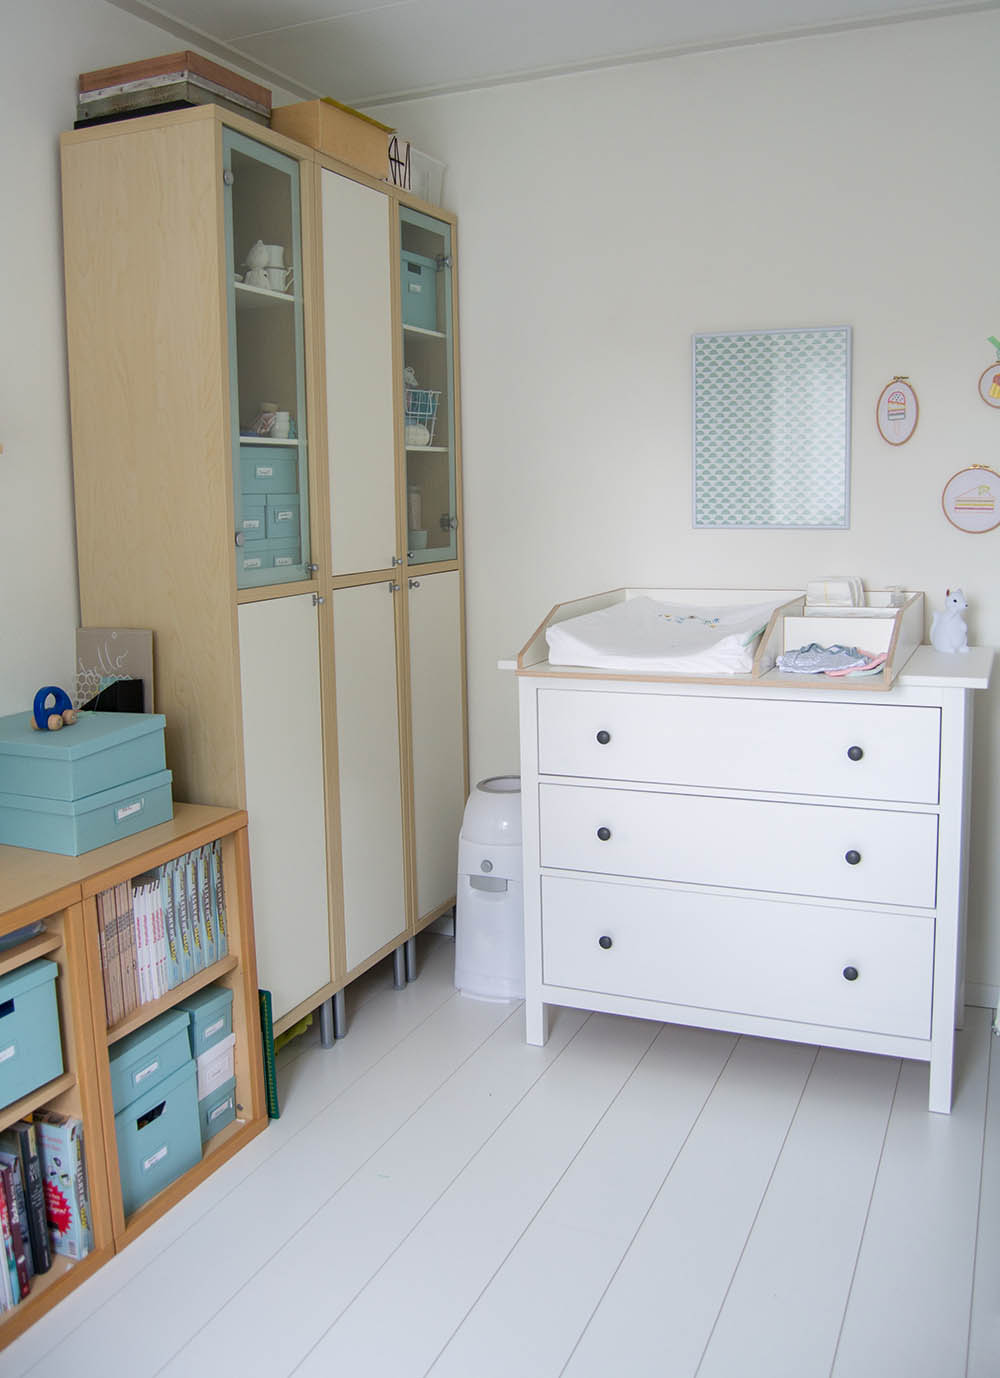 Maikes Haustour - multifunktionales Babyzimmer einrichten | {Babyzimmer einrichten 83}